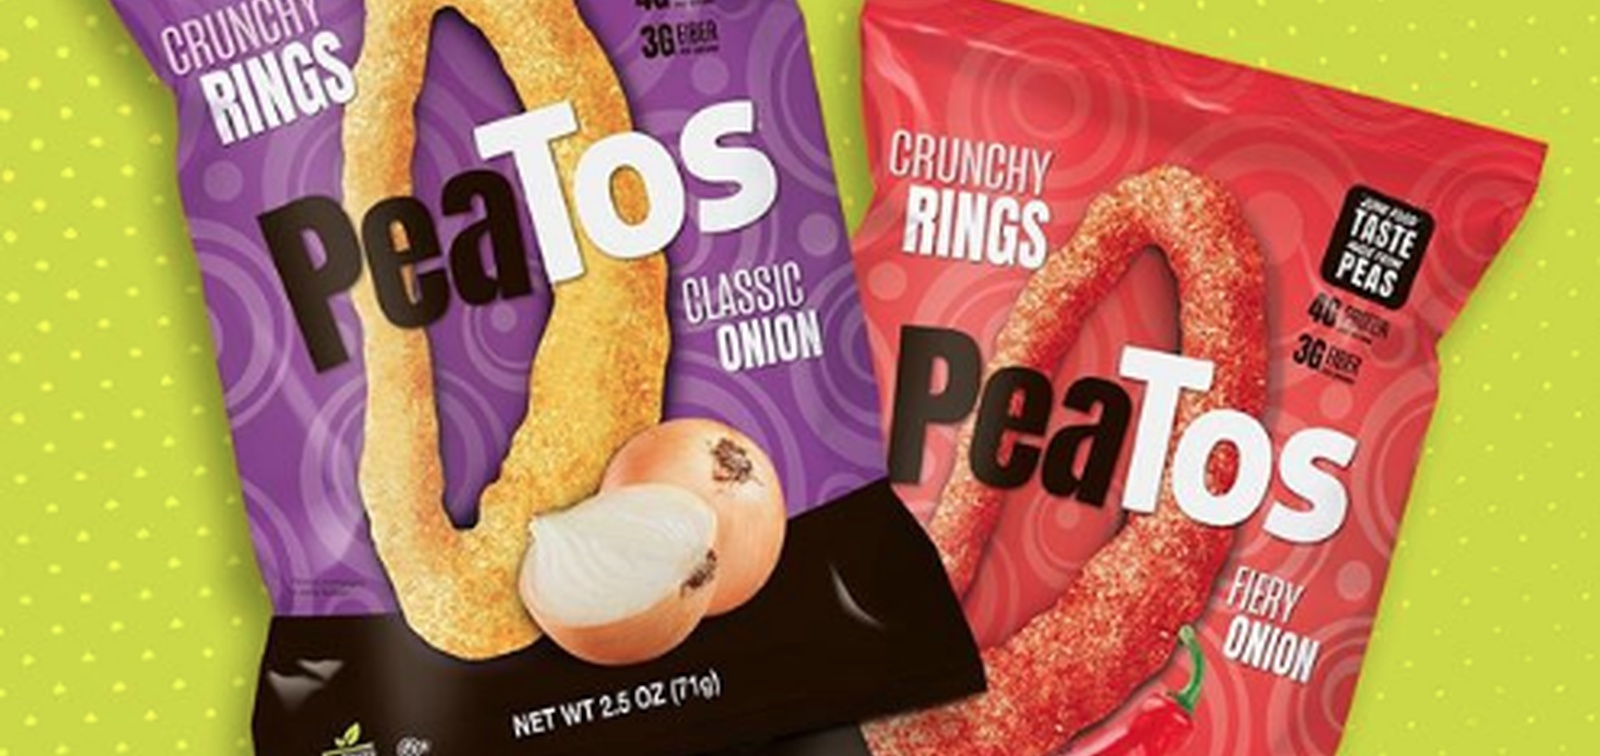 Peatos challenges snack giant Frito-Lay with its direct-to-consumer site